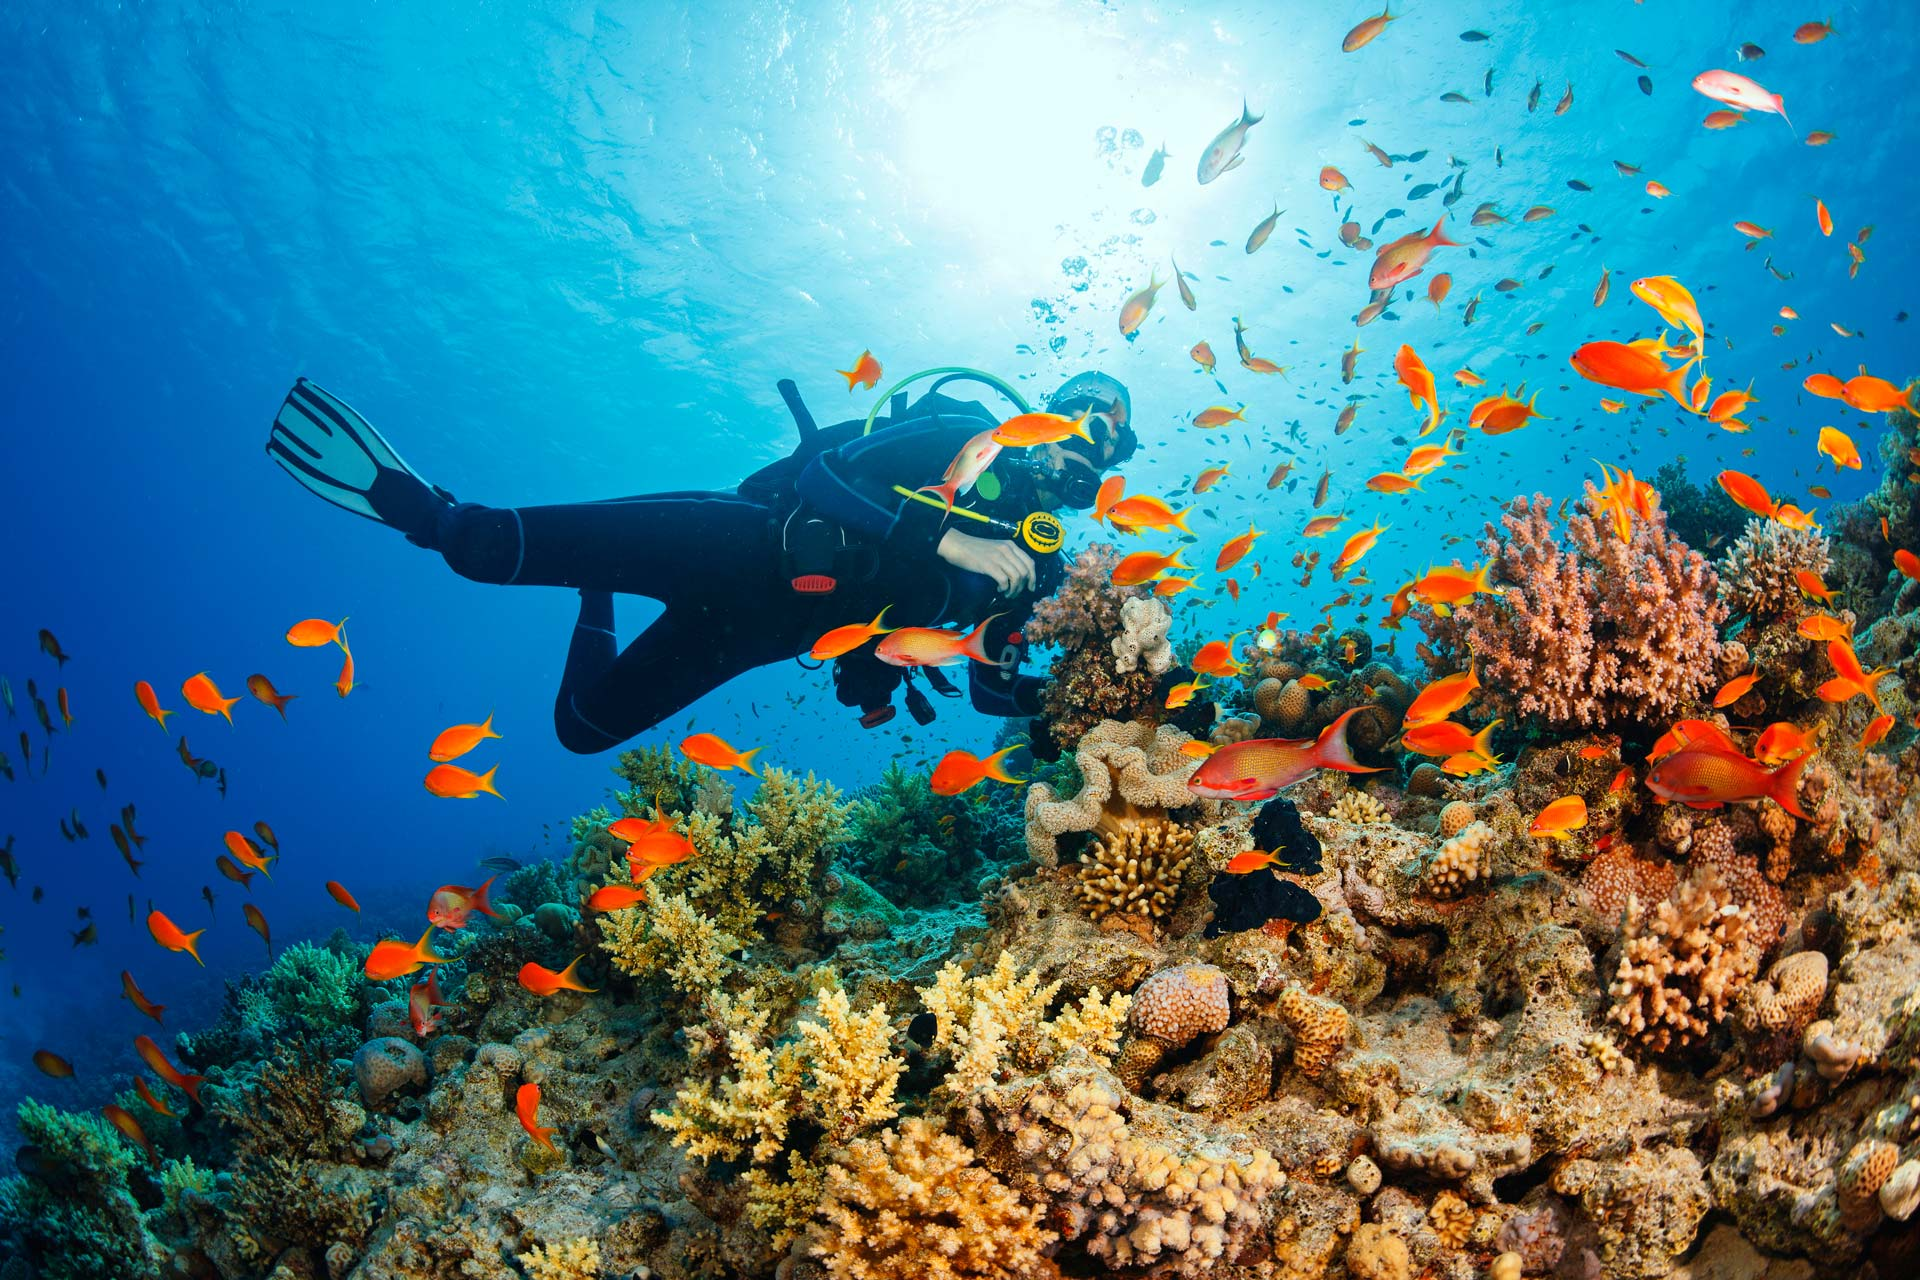 scuba diver under water by reef with colorful fish